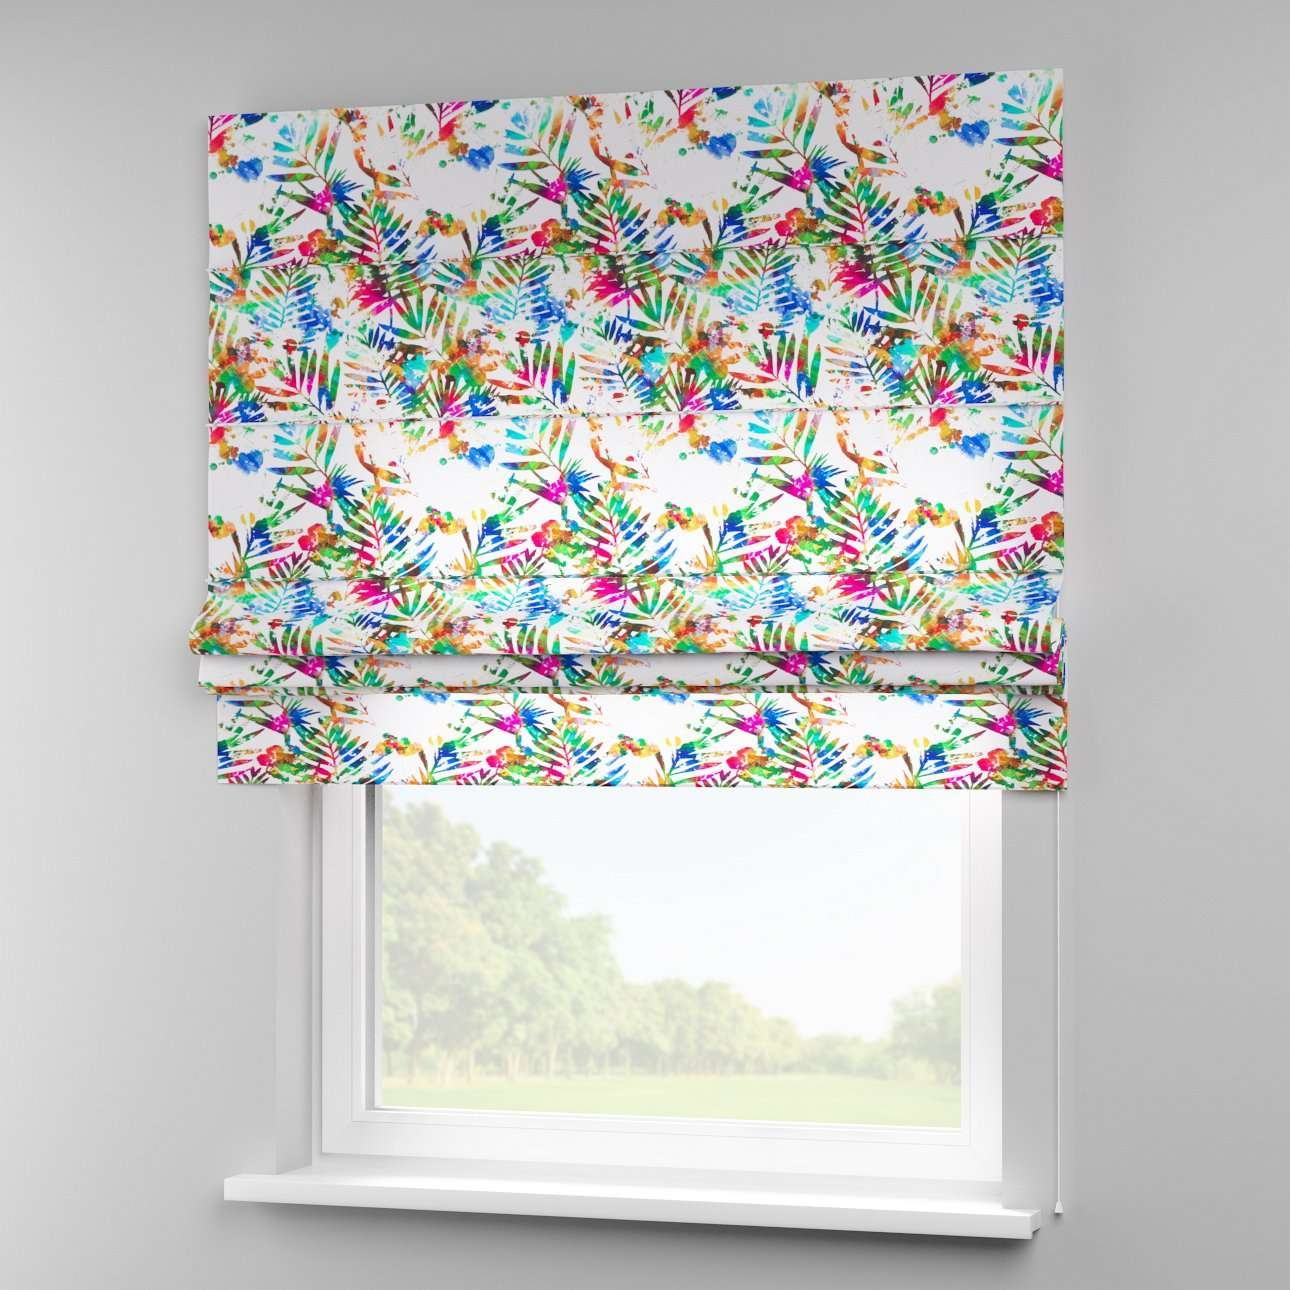 Padva roman blind  80 × 170 cm (31.5 × 67 inch) in collection New Art, fabric: 140-22